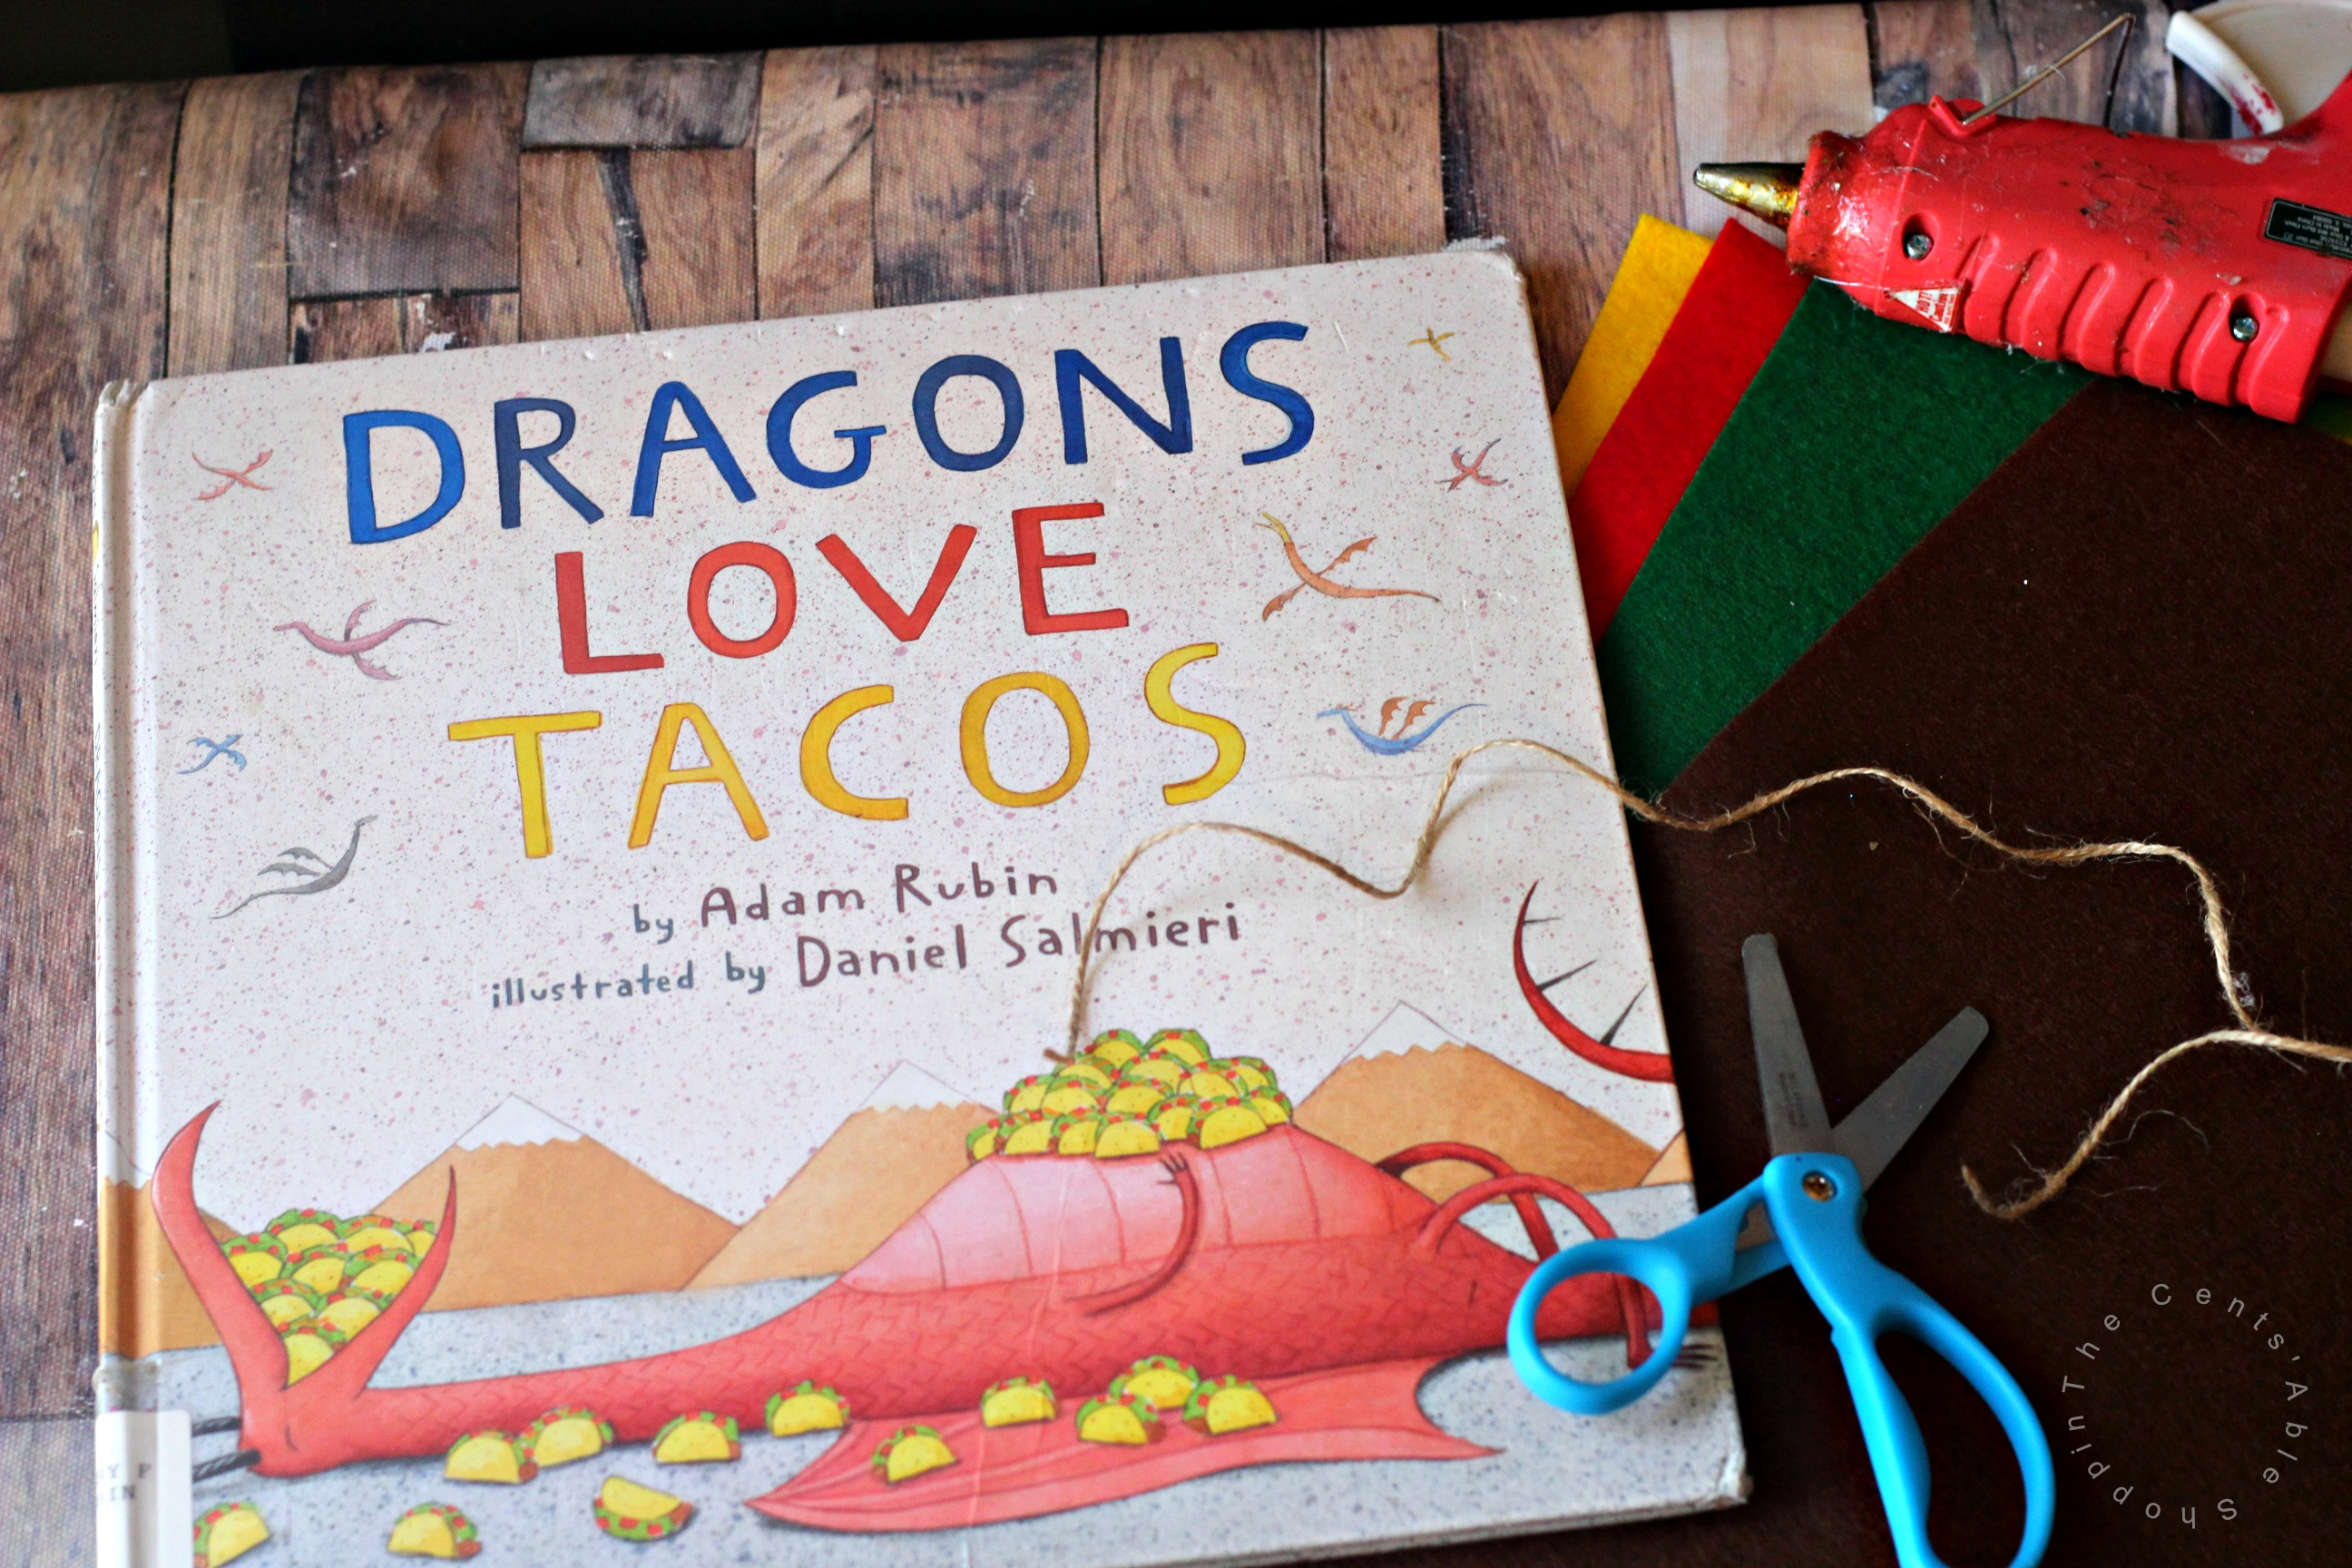 Dragons Love Tacos is a fun book about dragons who love to eat tacos. This Dragons Love Tacos Christmas Ornament is a fun complement to a wonderful story!